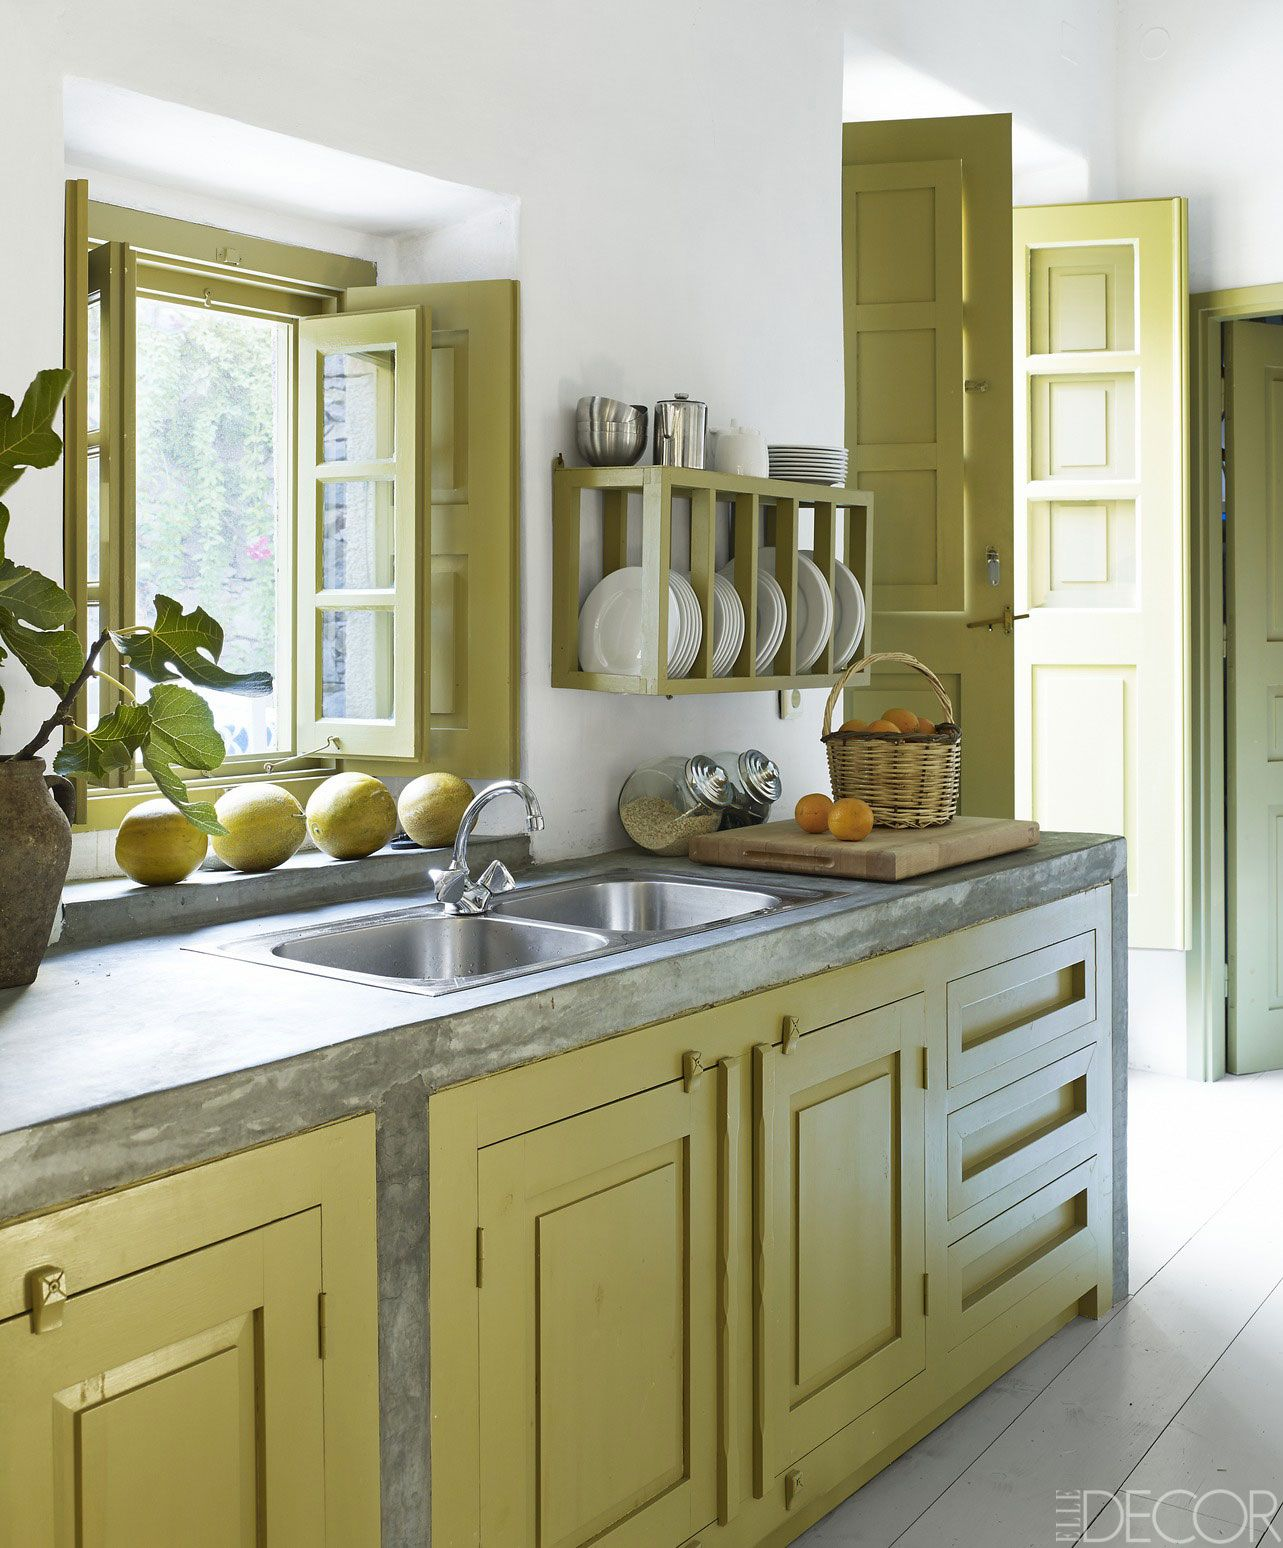 Kitchen Home Amusing 50 Small Kitchen Design Ideas  Decorating Tiny Kitchens Decorating Design